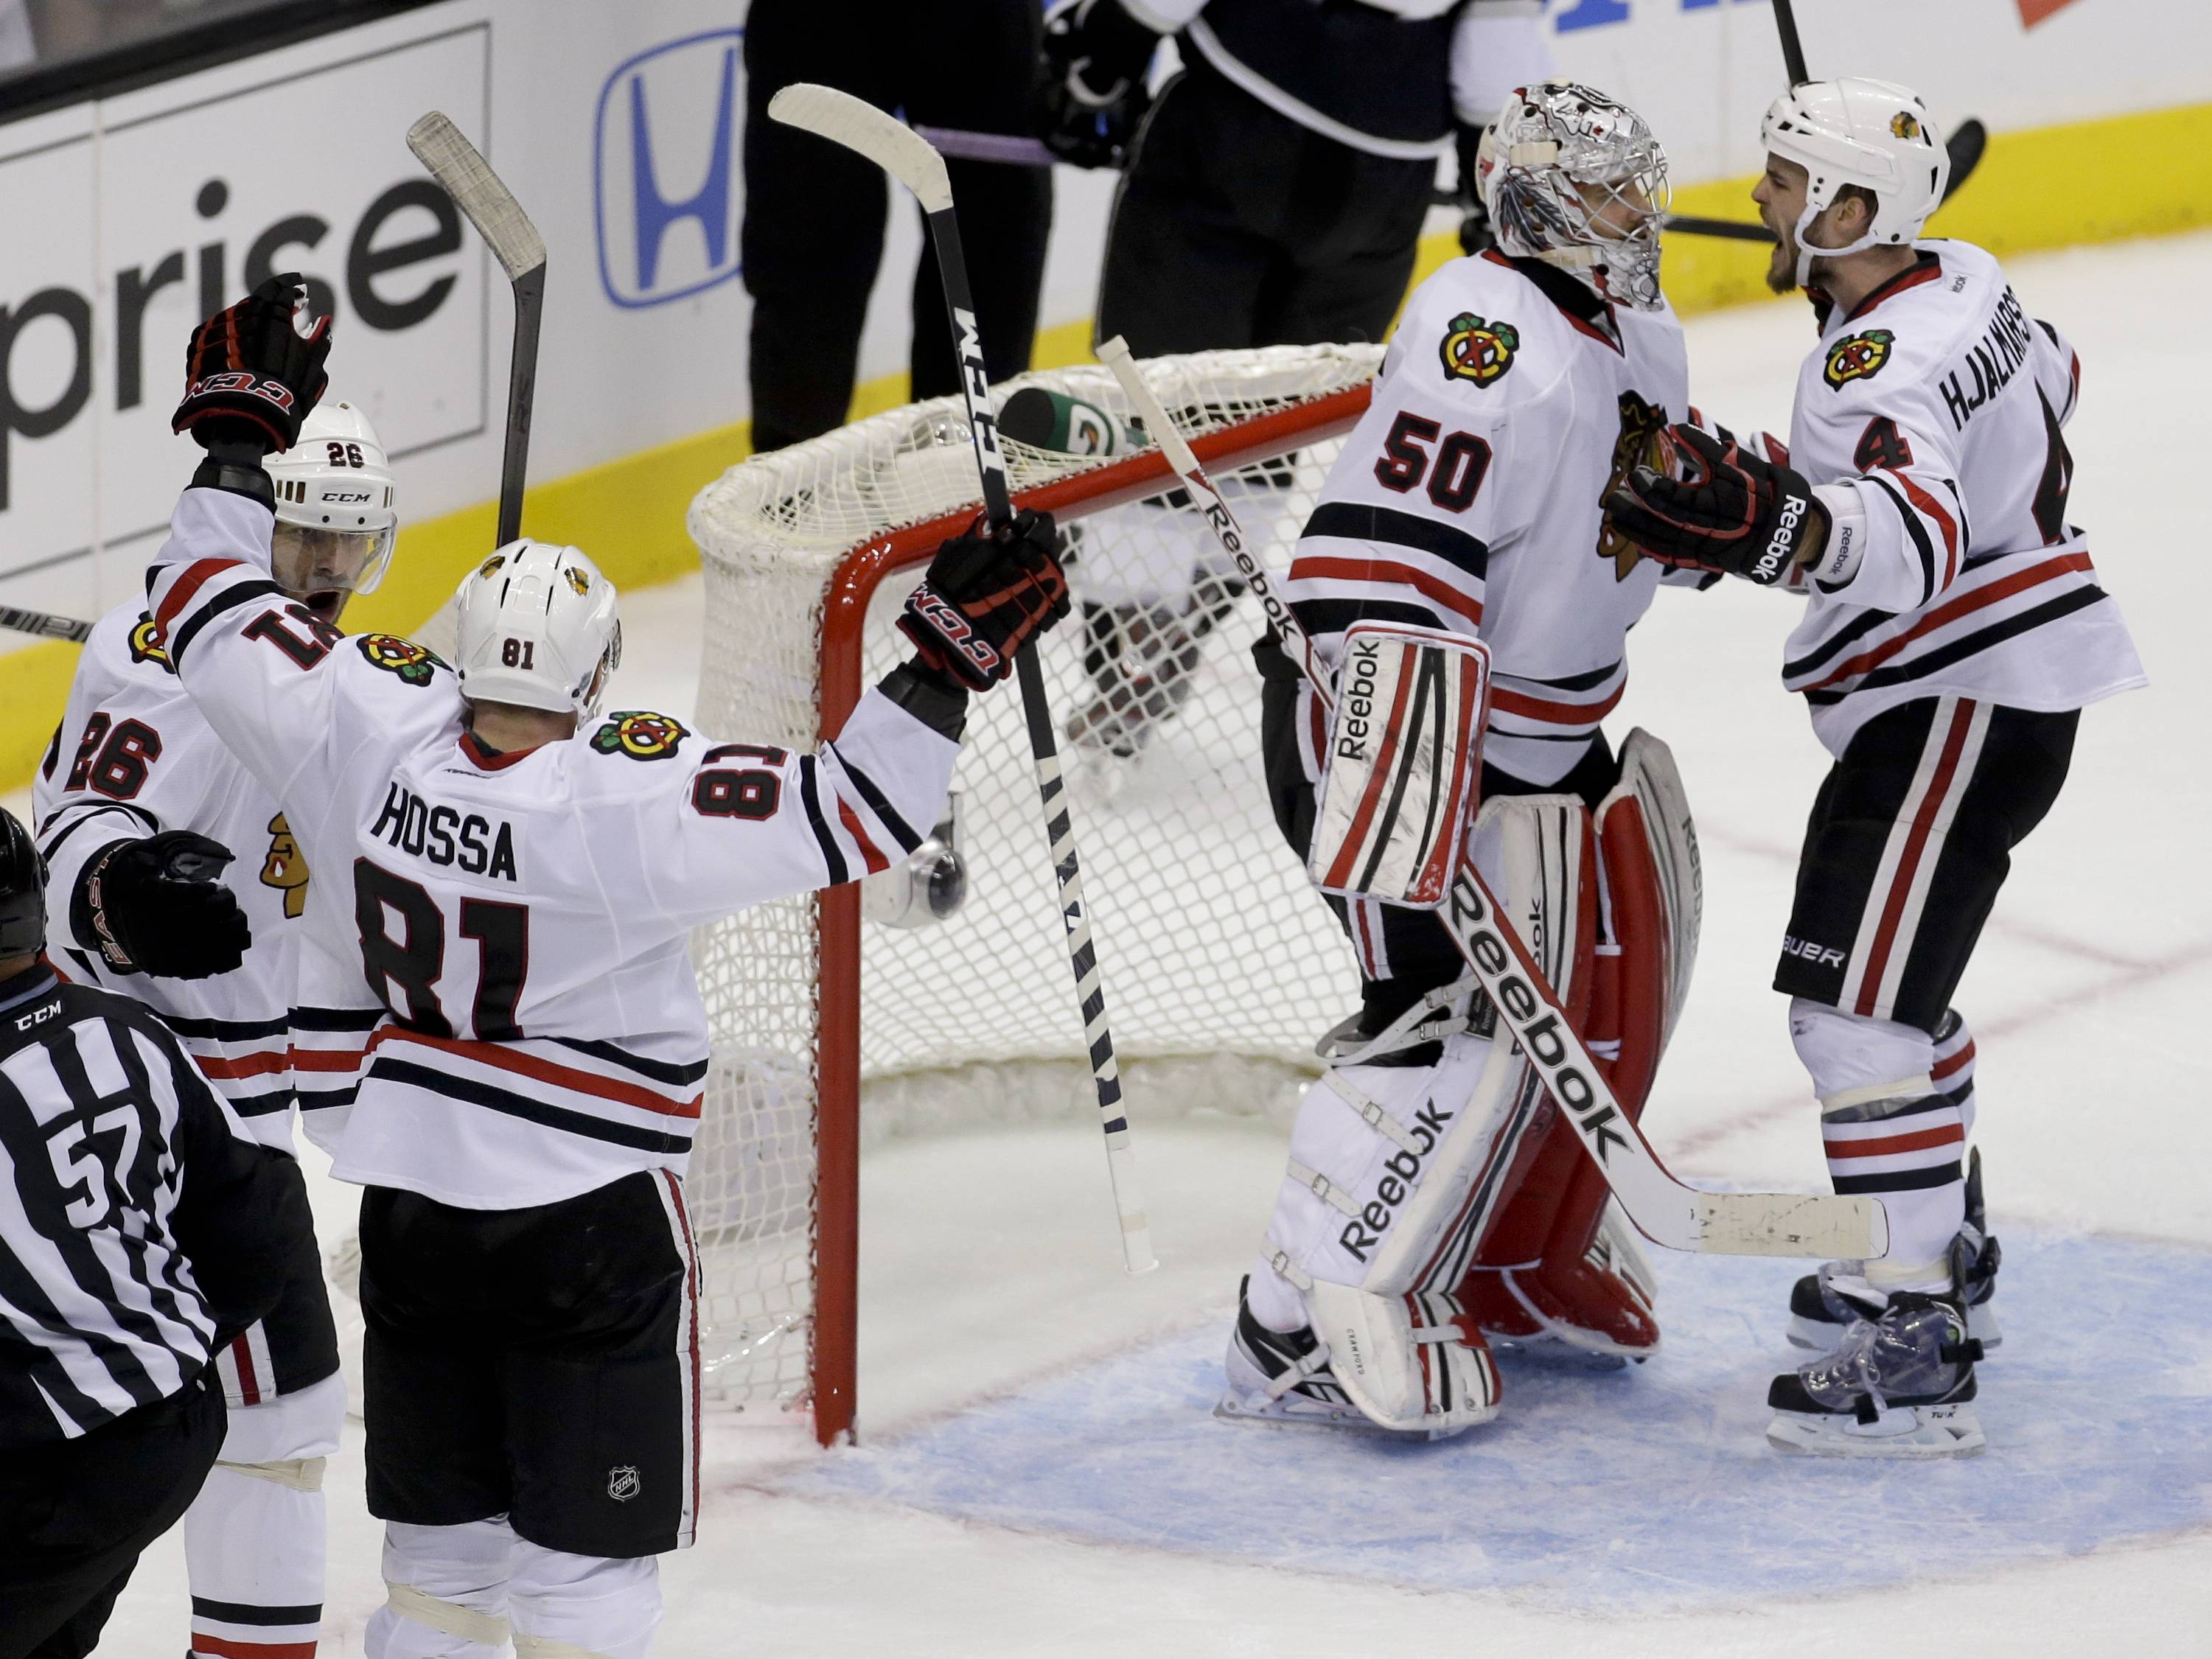 Chicago Blackhawks' Michal Handzus, Marian Hossa, goalie Corey Crawford, and Niklas Hjalmarsson, fromleft, celebrate a 3-2 win against the Los Angeles Kings in Game 4 of the NHL hockey Stanley Cup playoffs Western Conference finals, in Los Angeles on Thursday, June 6, 2013.